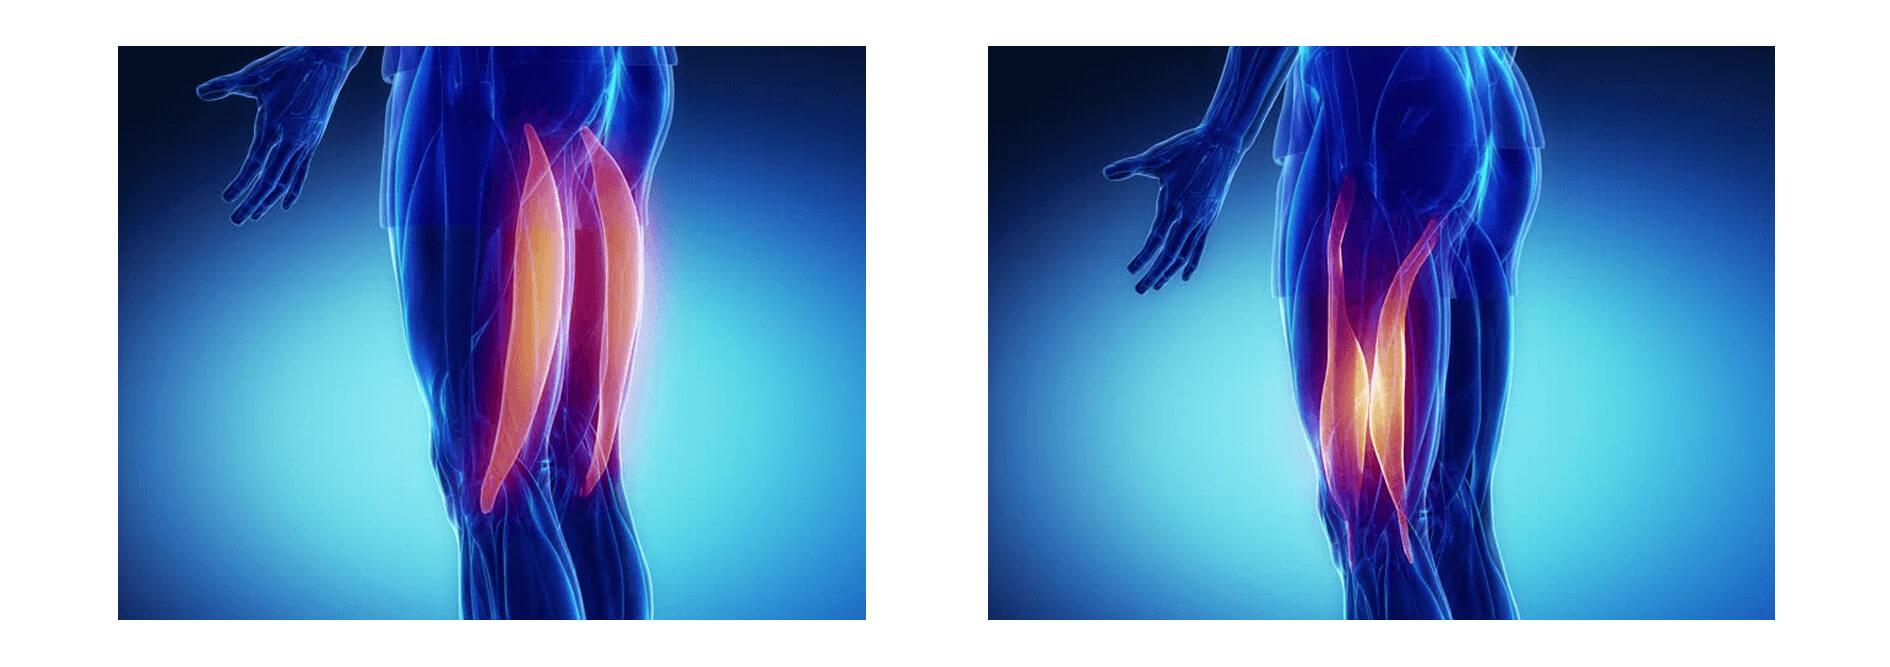 Sports-injury-concept-muscle-tissue